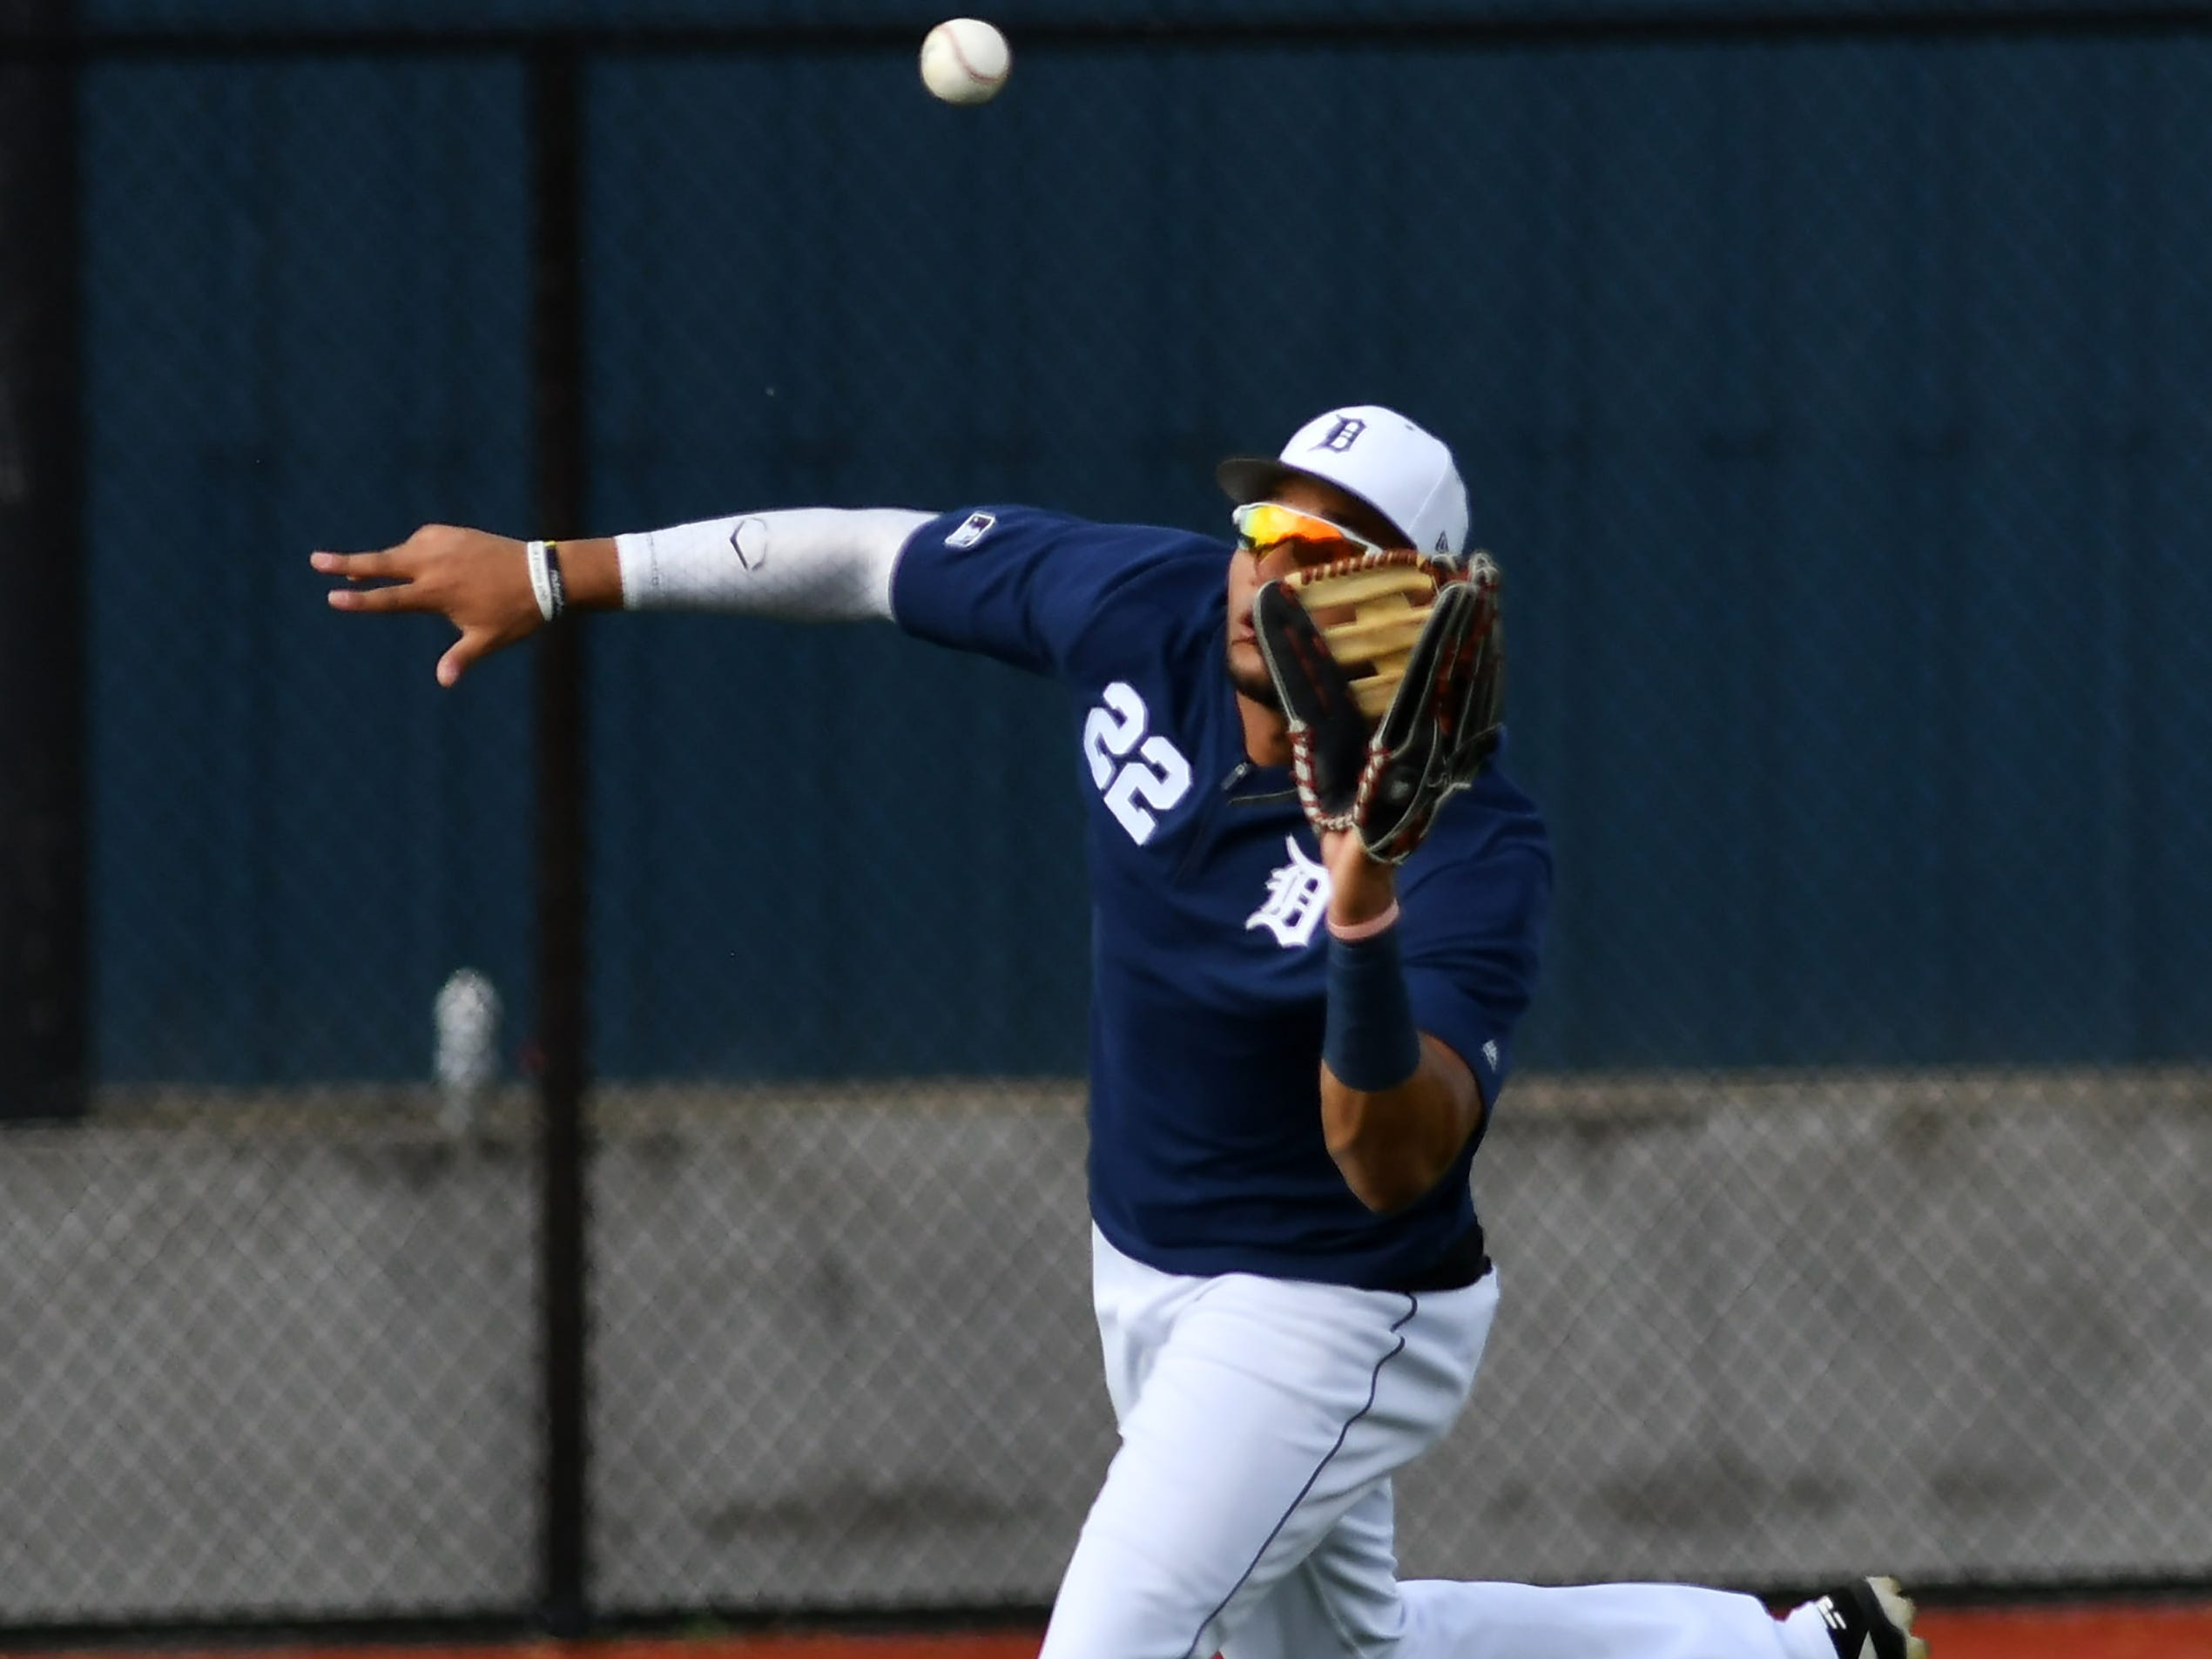 Tigers outfielder Victor Reyes makes a running catch on a fly ball during drills.